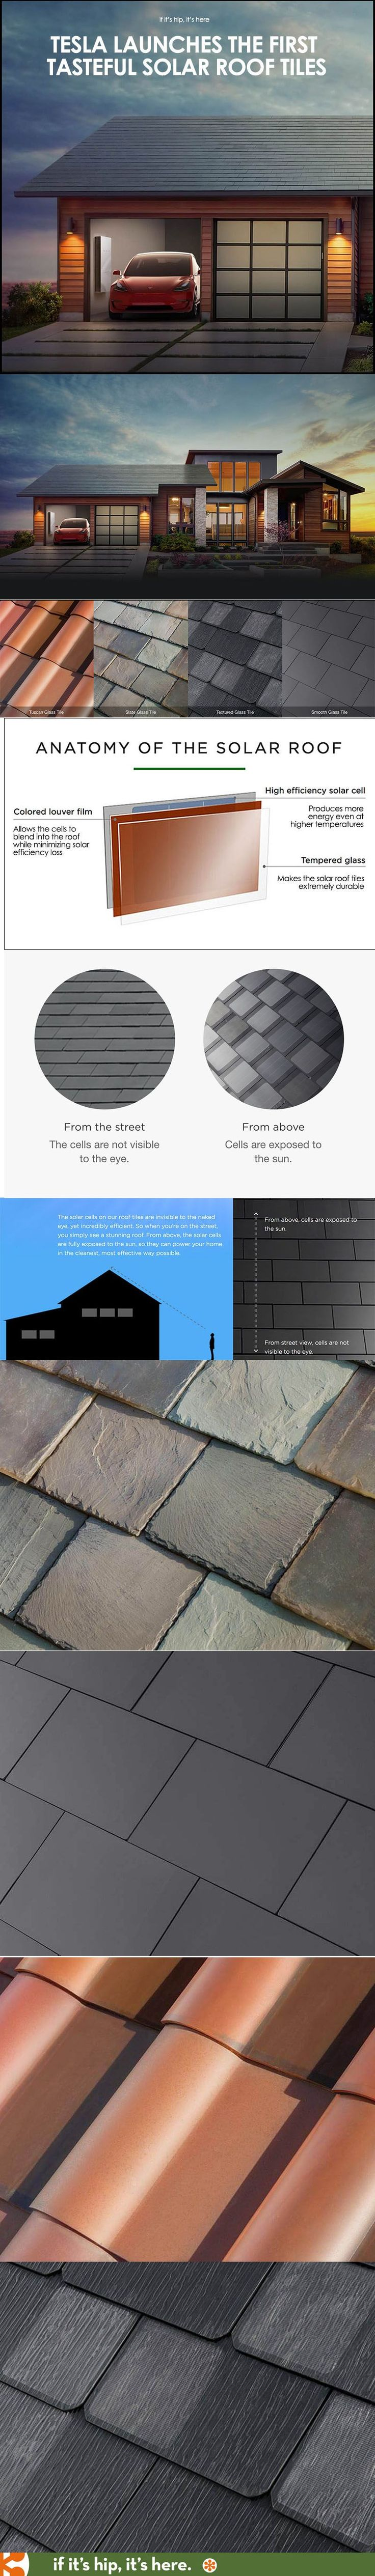 23 Best Solar Ideas Images On Pinterest Roof Tiles Panel With Corrugated Thin Film Cells Wiring Panels In Tesla Are Changing The Game Products A Result Of Teslas Acquisition Solarcity First Truly Tasteful Roofing